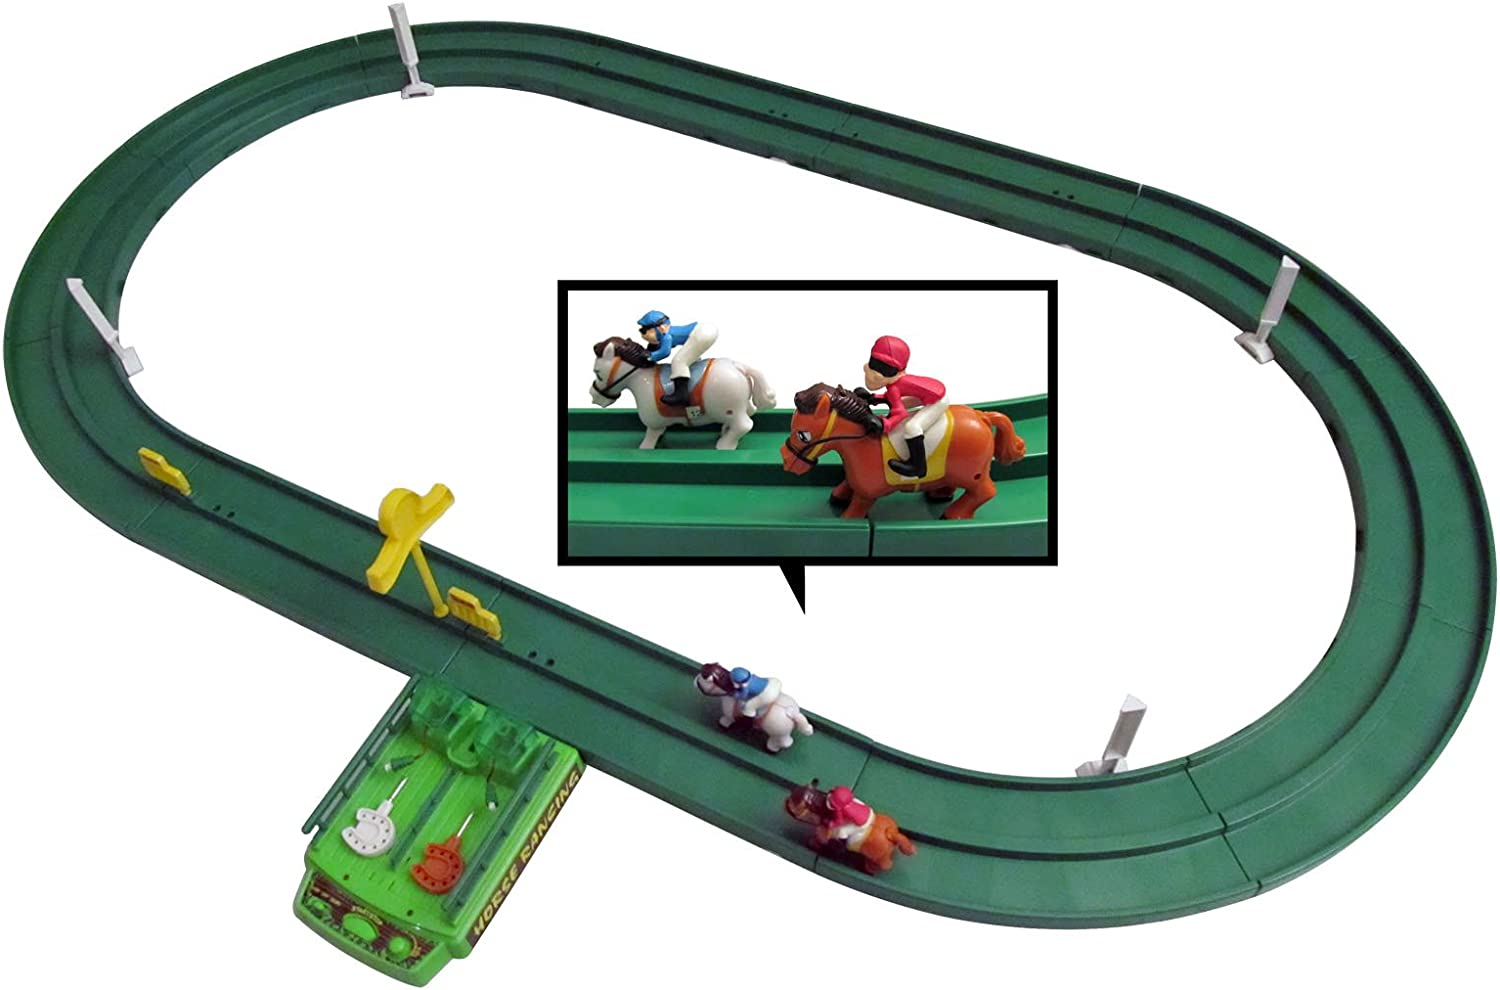 Horse Racing Track Game Set For Kids With 2 Race Horses Amazon Co Uk Toys Games